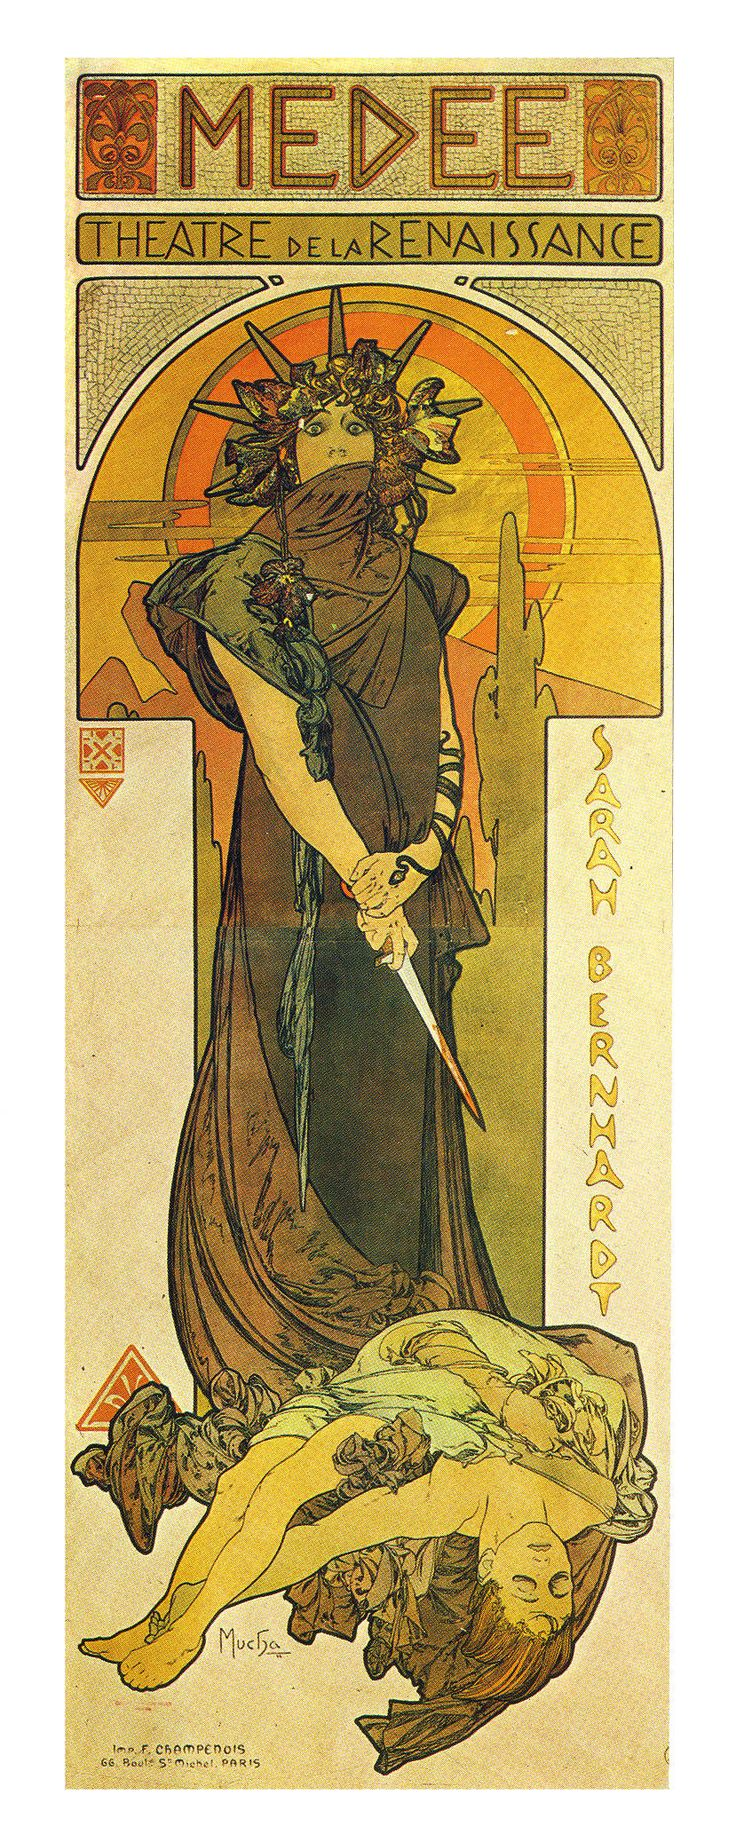 medea and themes Free medea papers , essays, and comparing the themes of vincenzio bellini's norma and euripedes' medea - comparing the themes of vincenzio bellini's norma and.